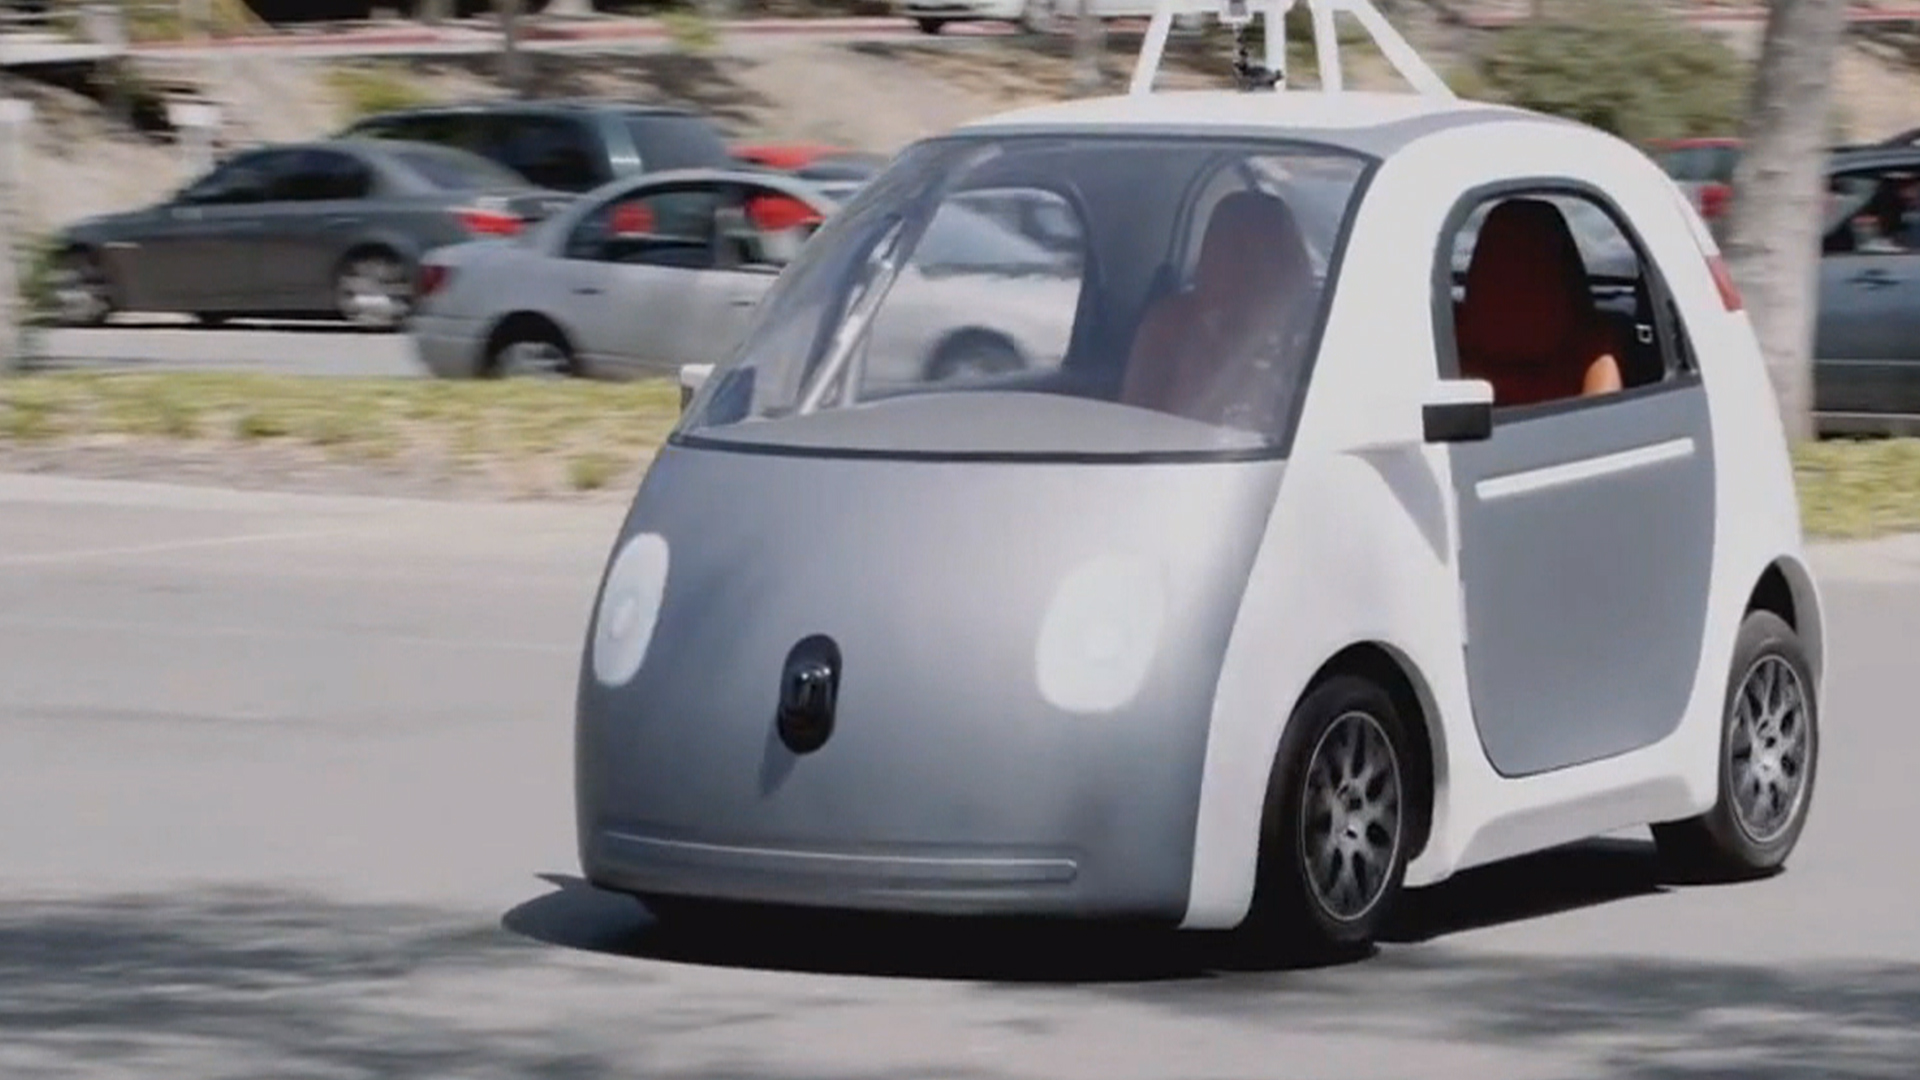 Google's Brin Defends Accident Records of Self-Driving Cars